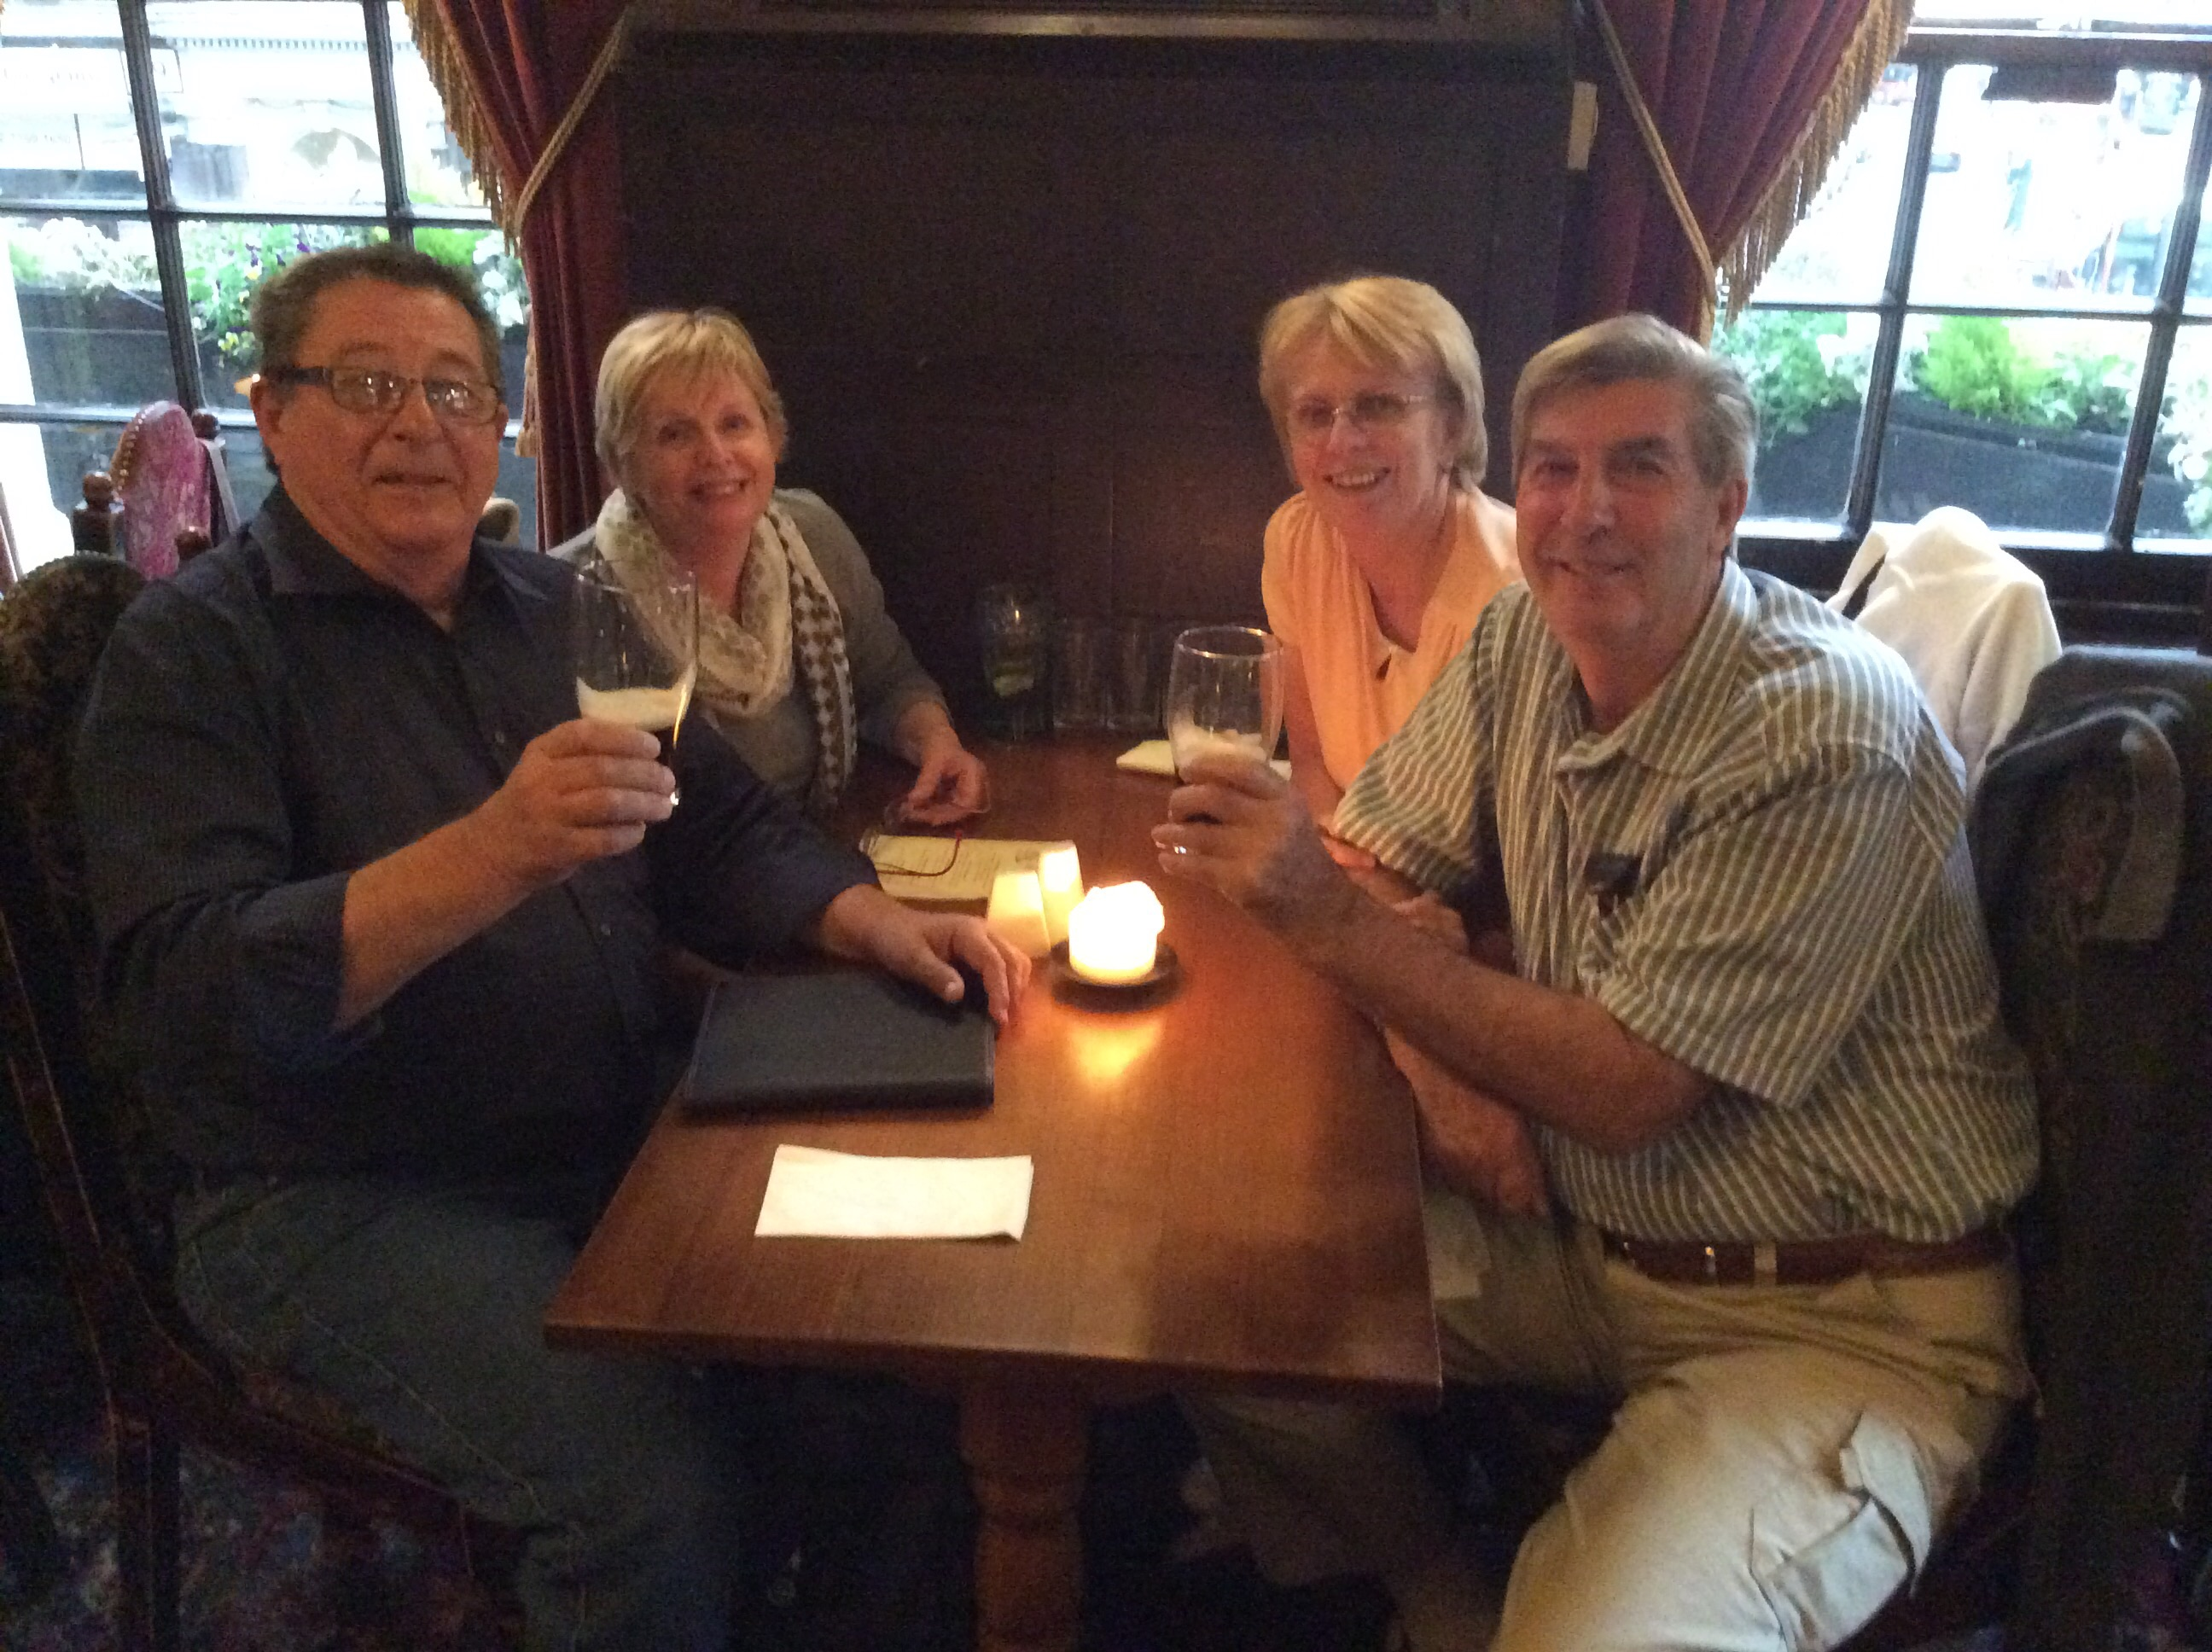 Max & Robyn Winter having a Guinness with Maurie & Bernice Graham after meeting up in London.